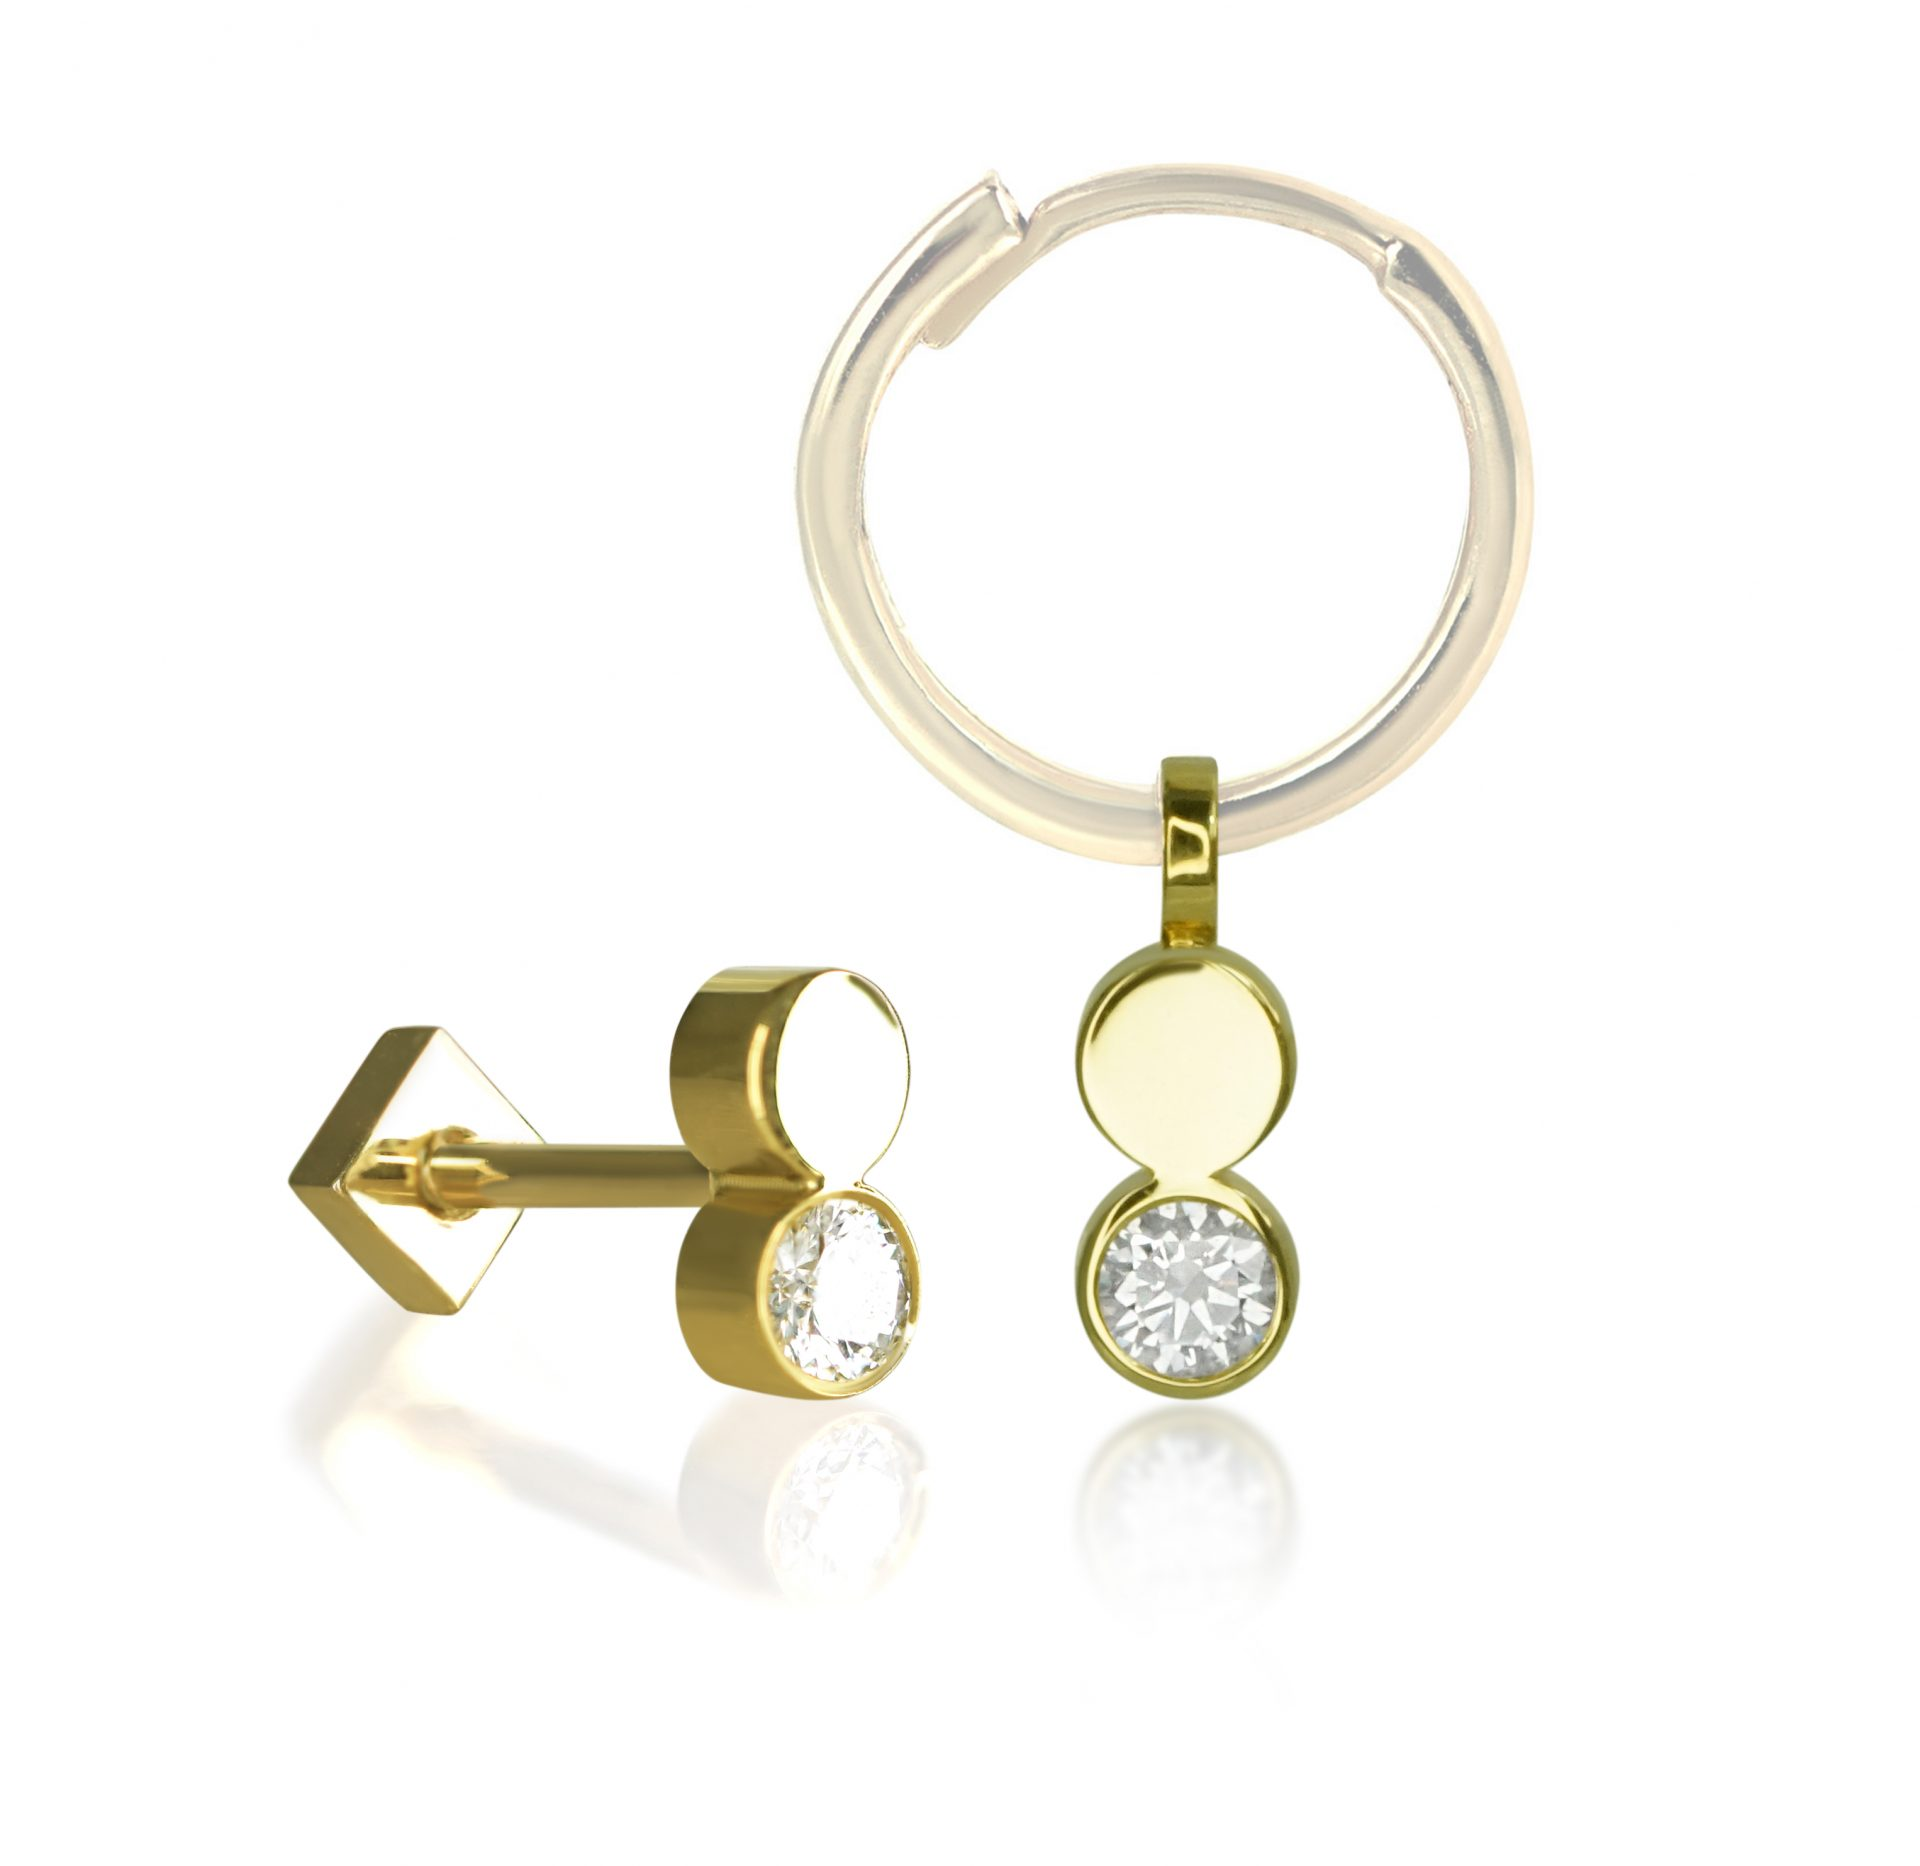 high-quality-cartilage-earrings-18k-white-yellow-gold-huggie-hoop-charms-luxury-piercings-lena-cohen-british-designer